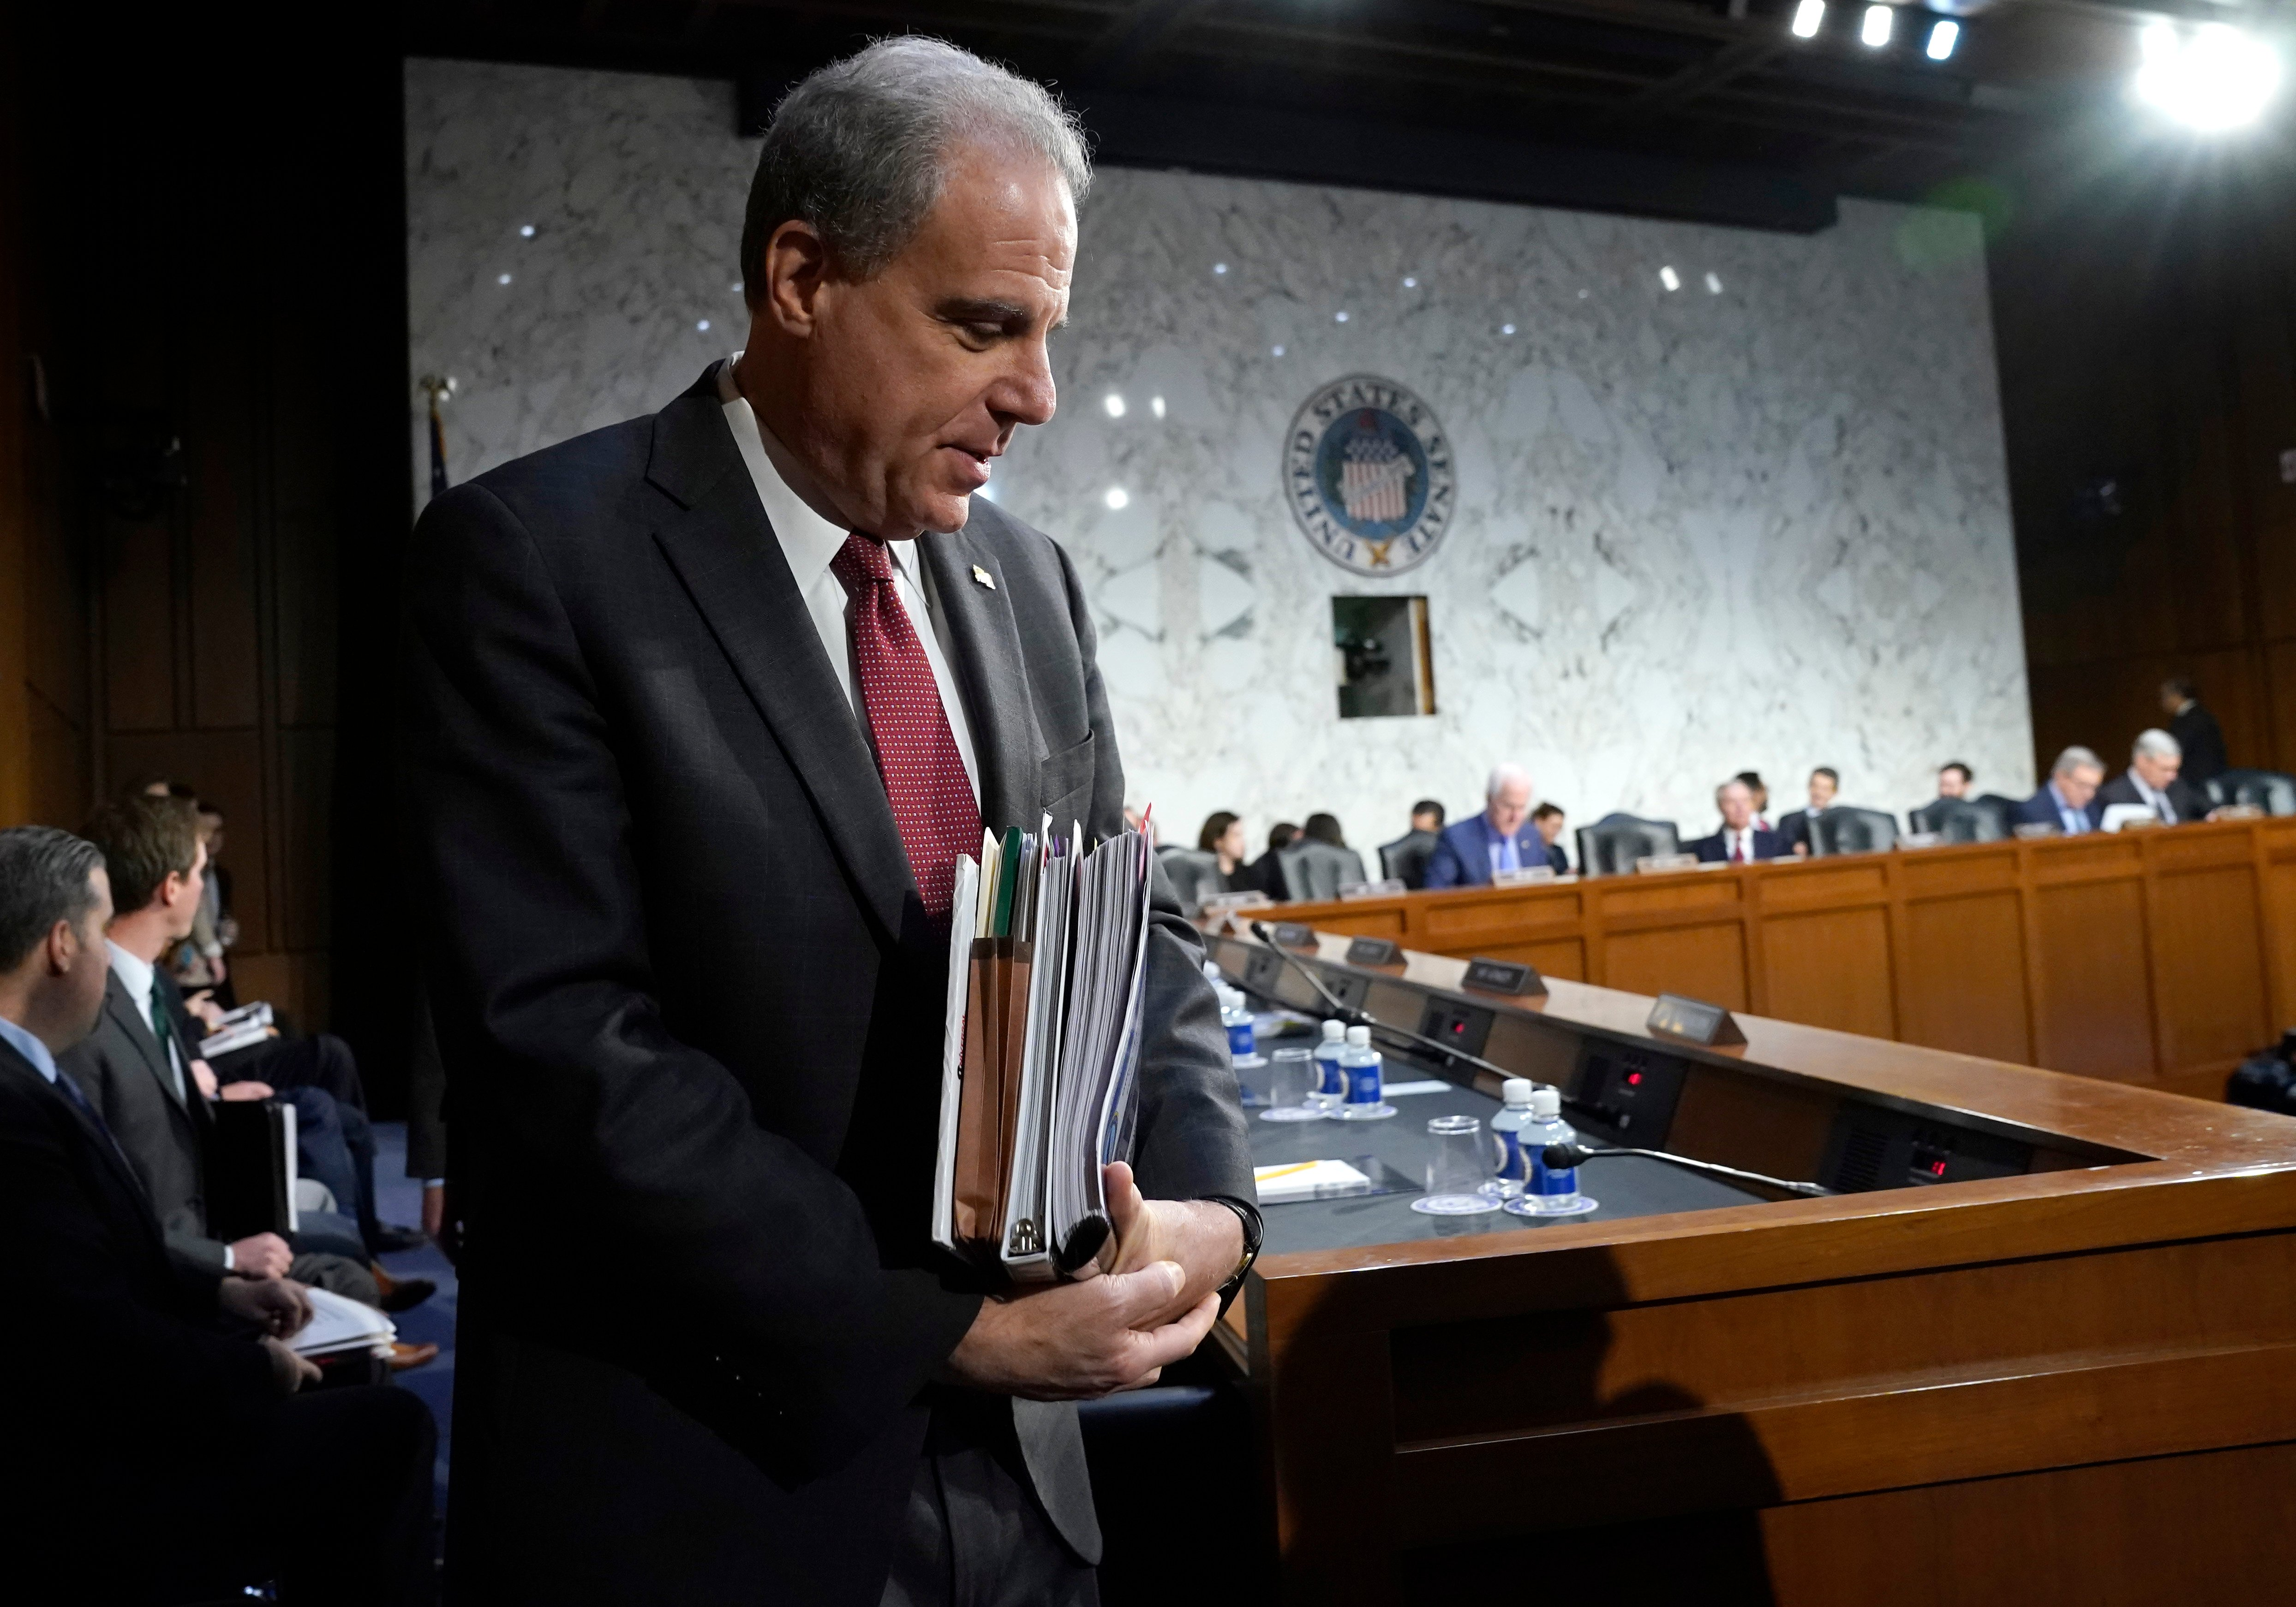 Michael Horowitz, inspector general for the Justice Department, returns for testimony following a short break before the Senate Judiciary Committee in the Hart Senate Office Building on December 11, 2019 in Washington, DC. (Photo by Win McNamee/Getty Images)